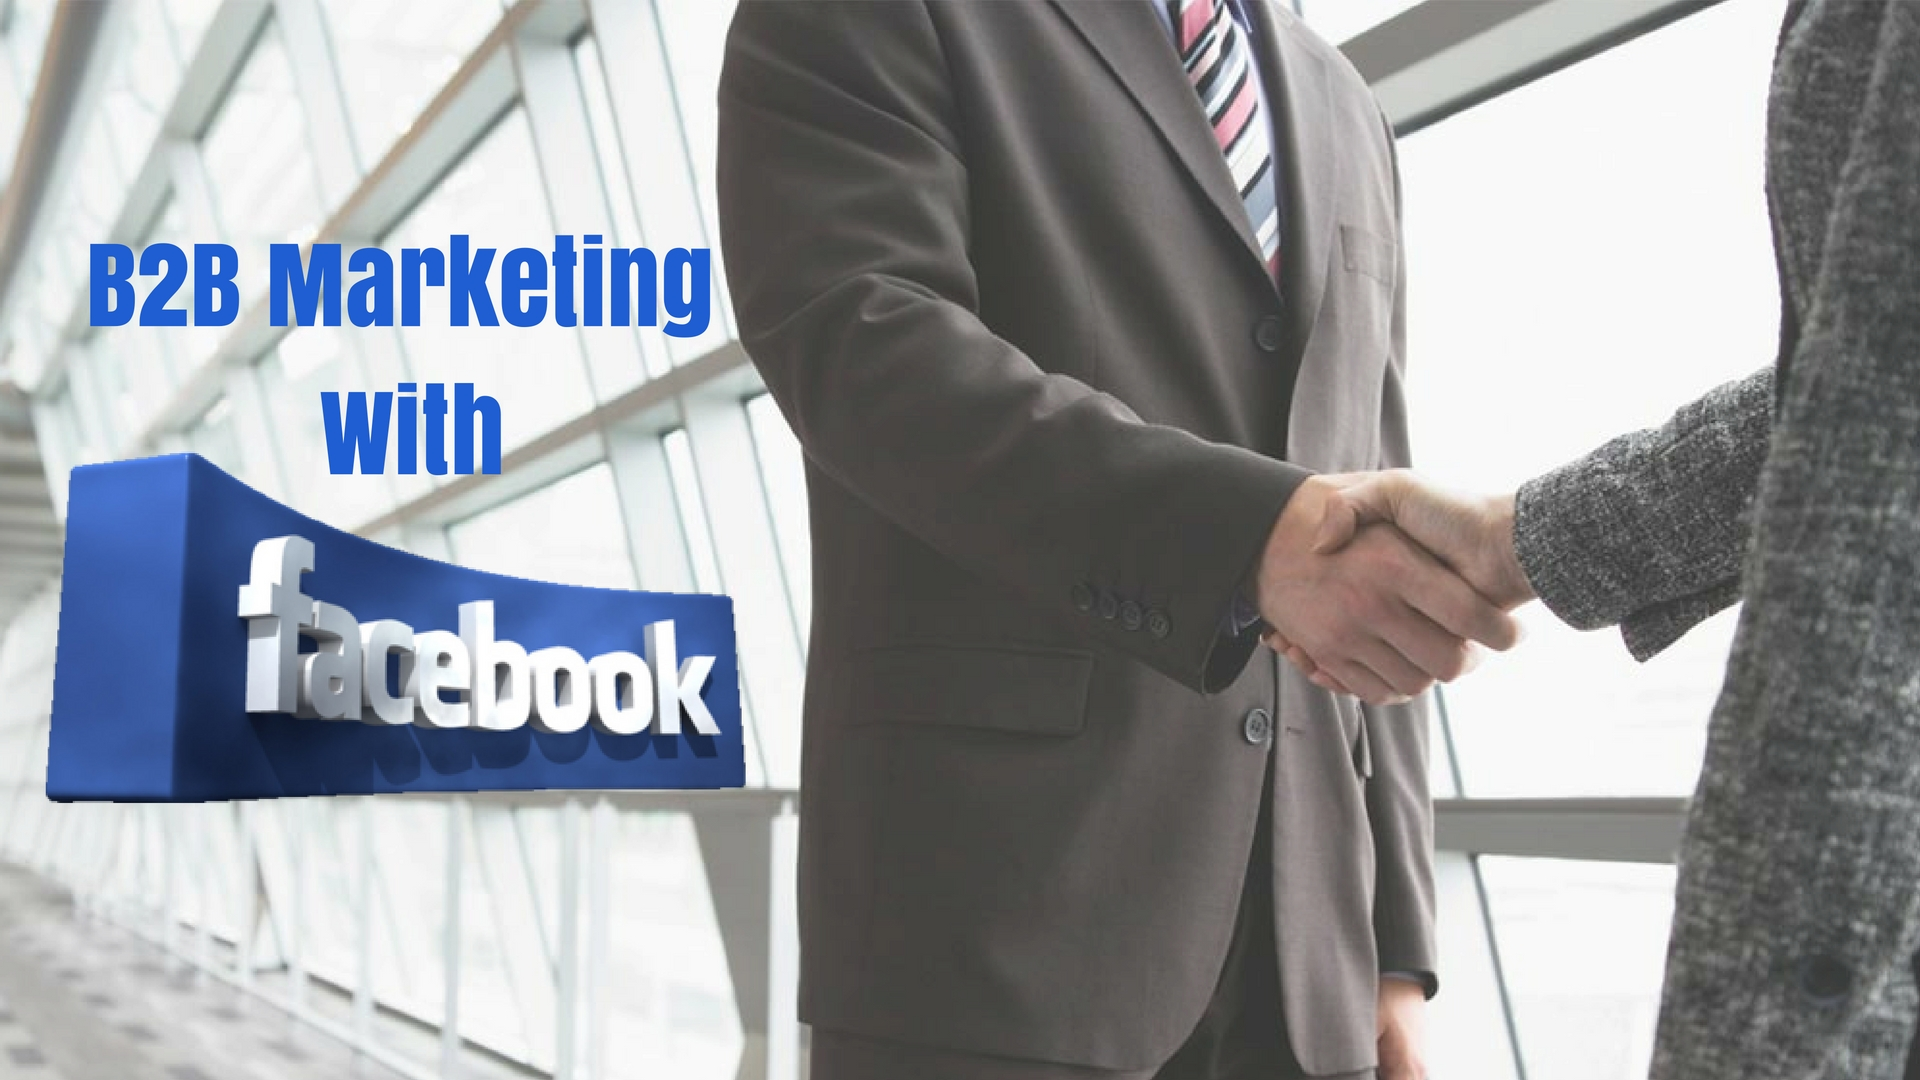 B2B Marketing With Facebook